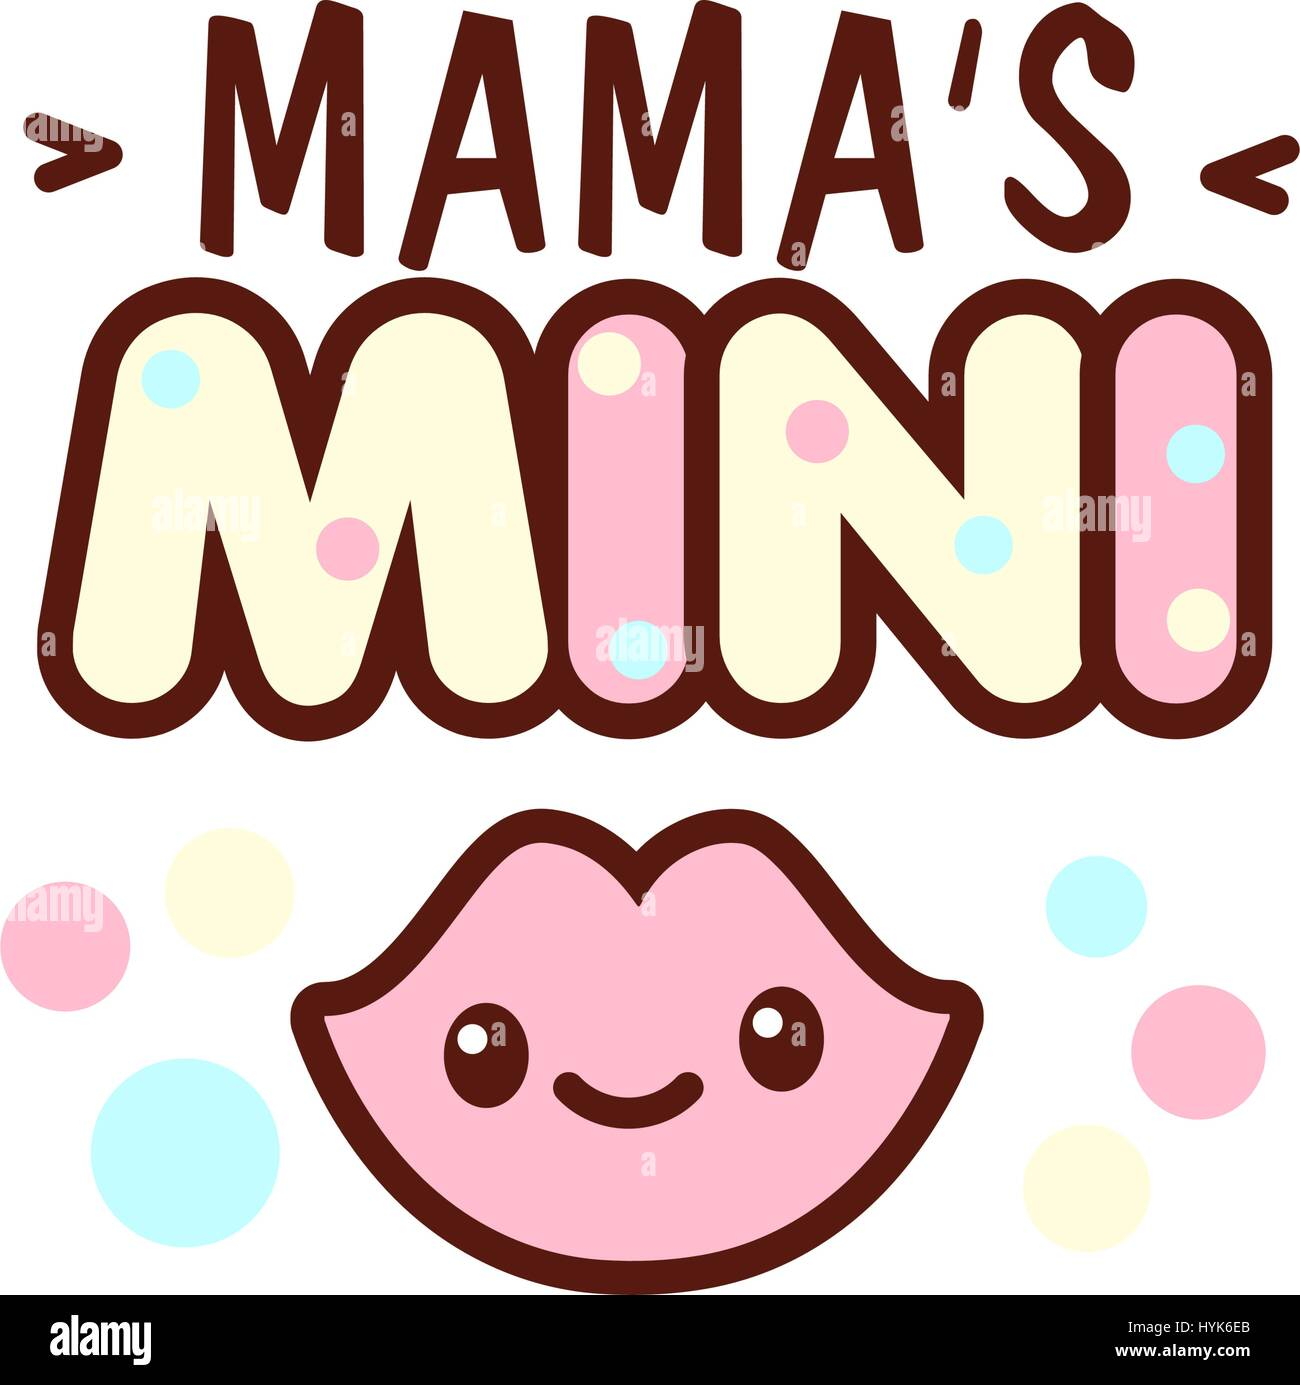 Cute little smiling lips and the mama s mini lettering illustration. illustration of isolated with phrase on white. - Stock Vector